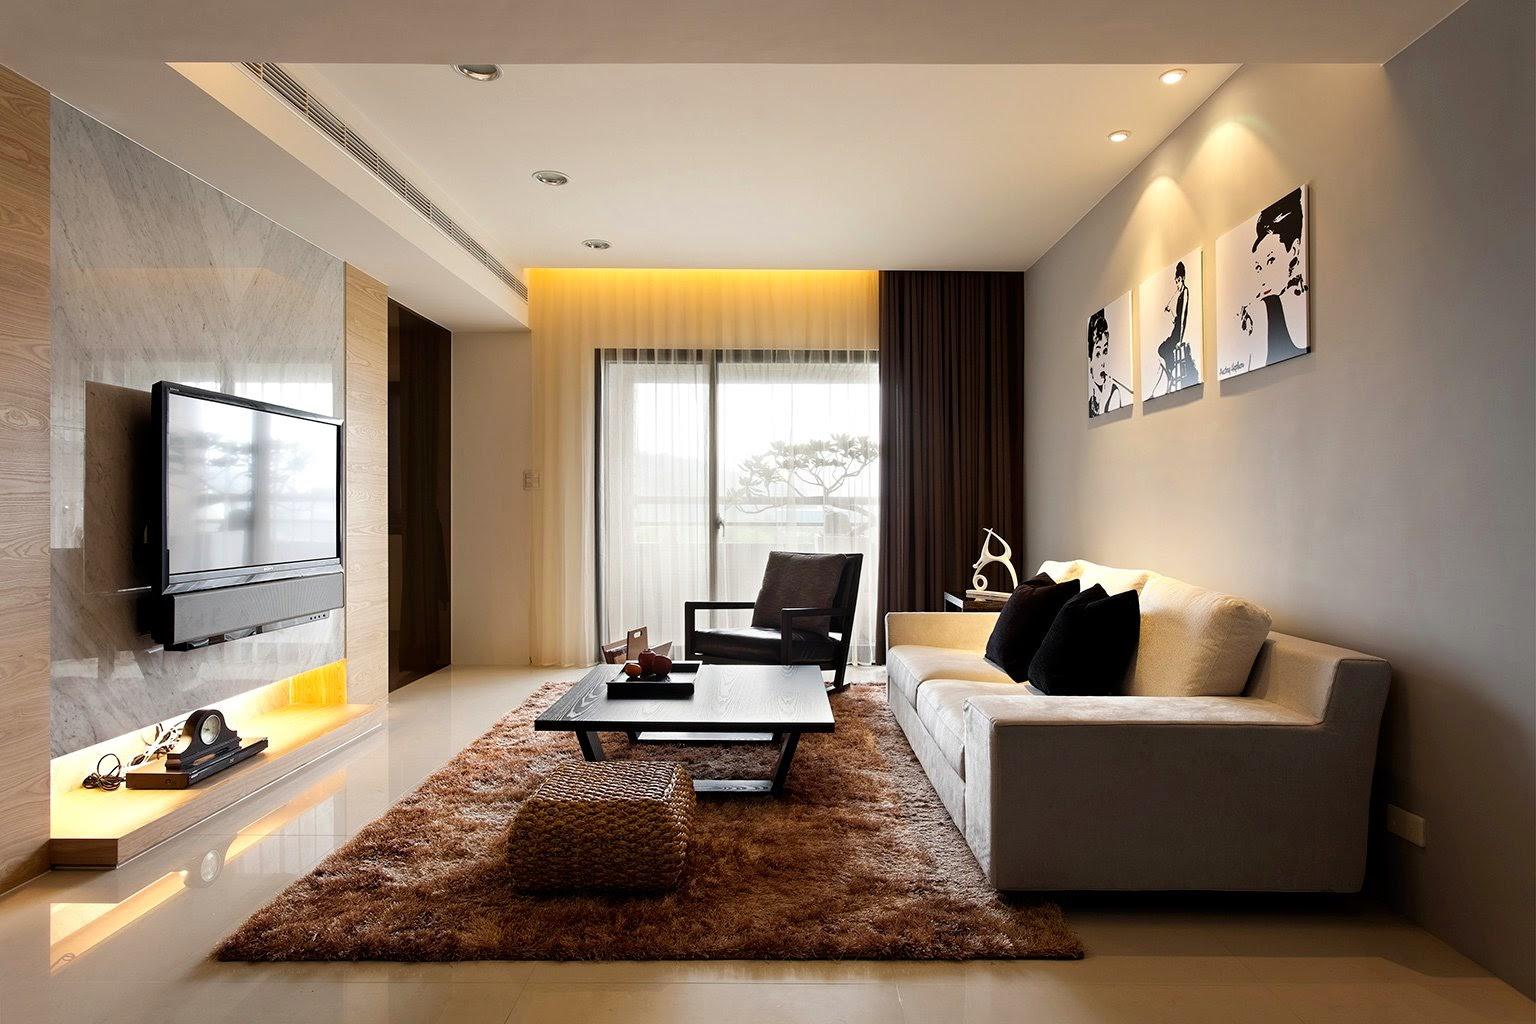 minimalist home design decor minimalist homes modern small living room 2015 - Home Decor Design